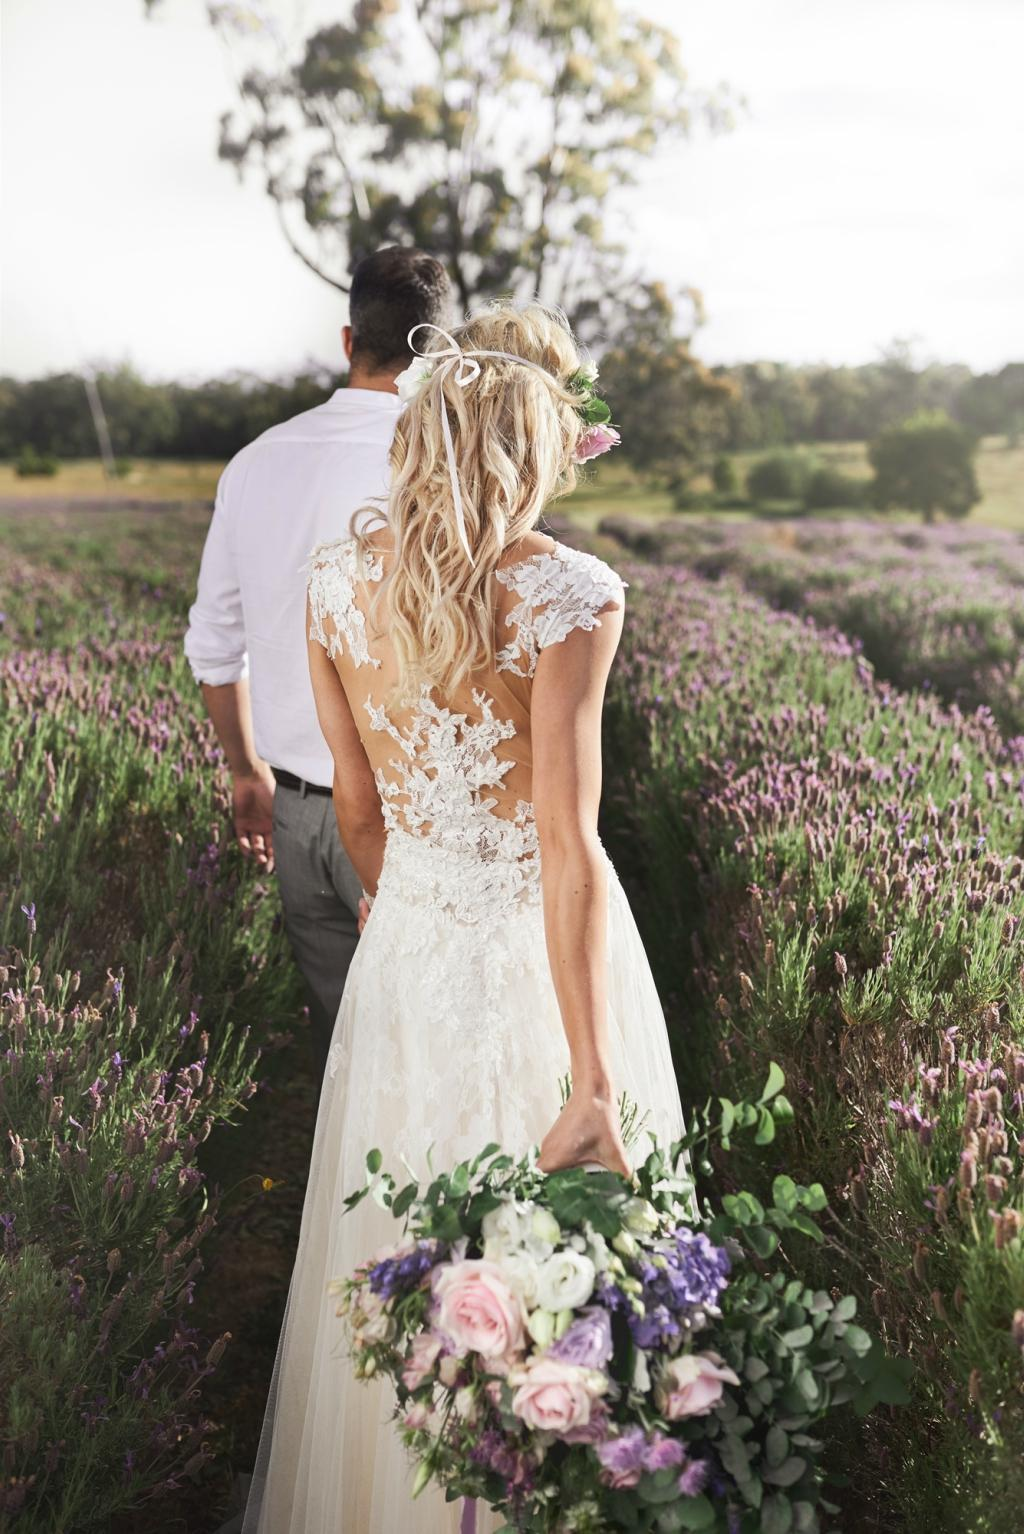 How To Style A Luxe Boho Wedding Adorn Invitations Philly In Love Philadelphia Weddings Inspiration